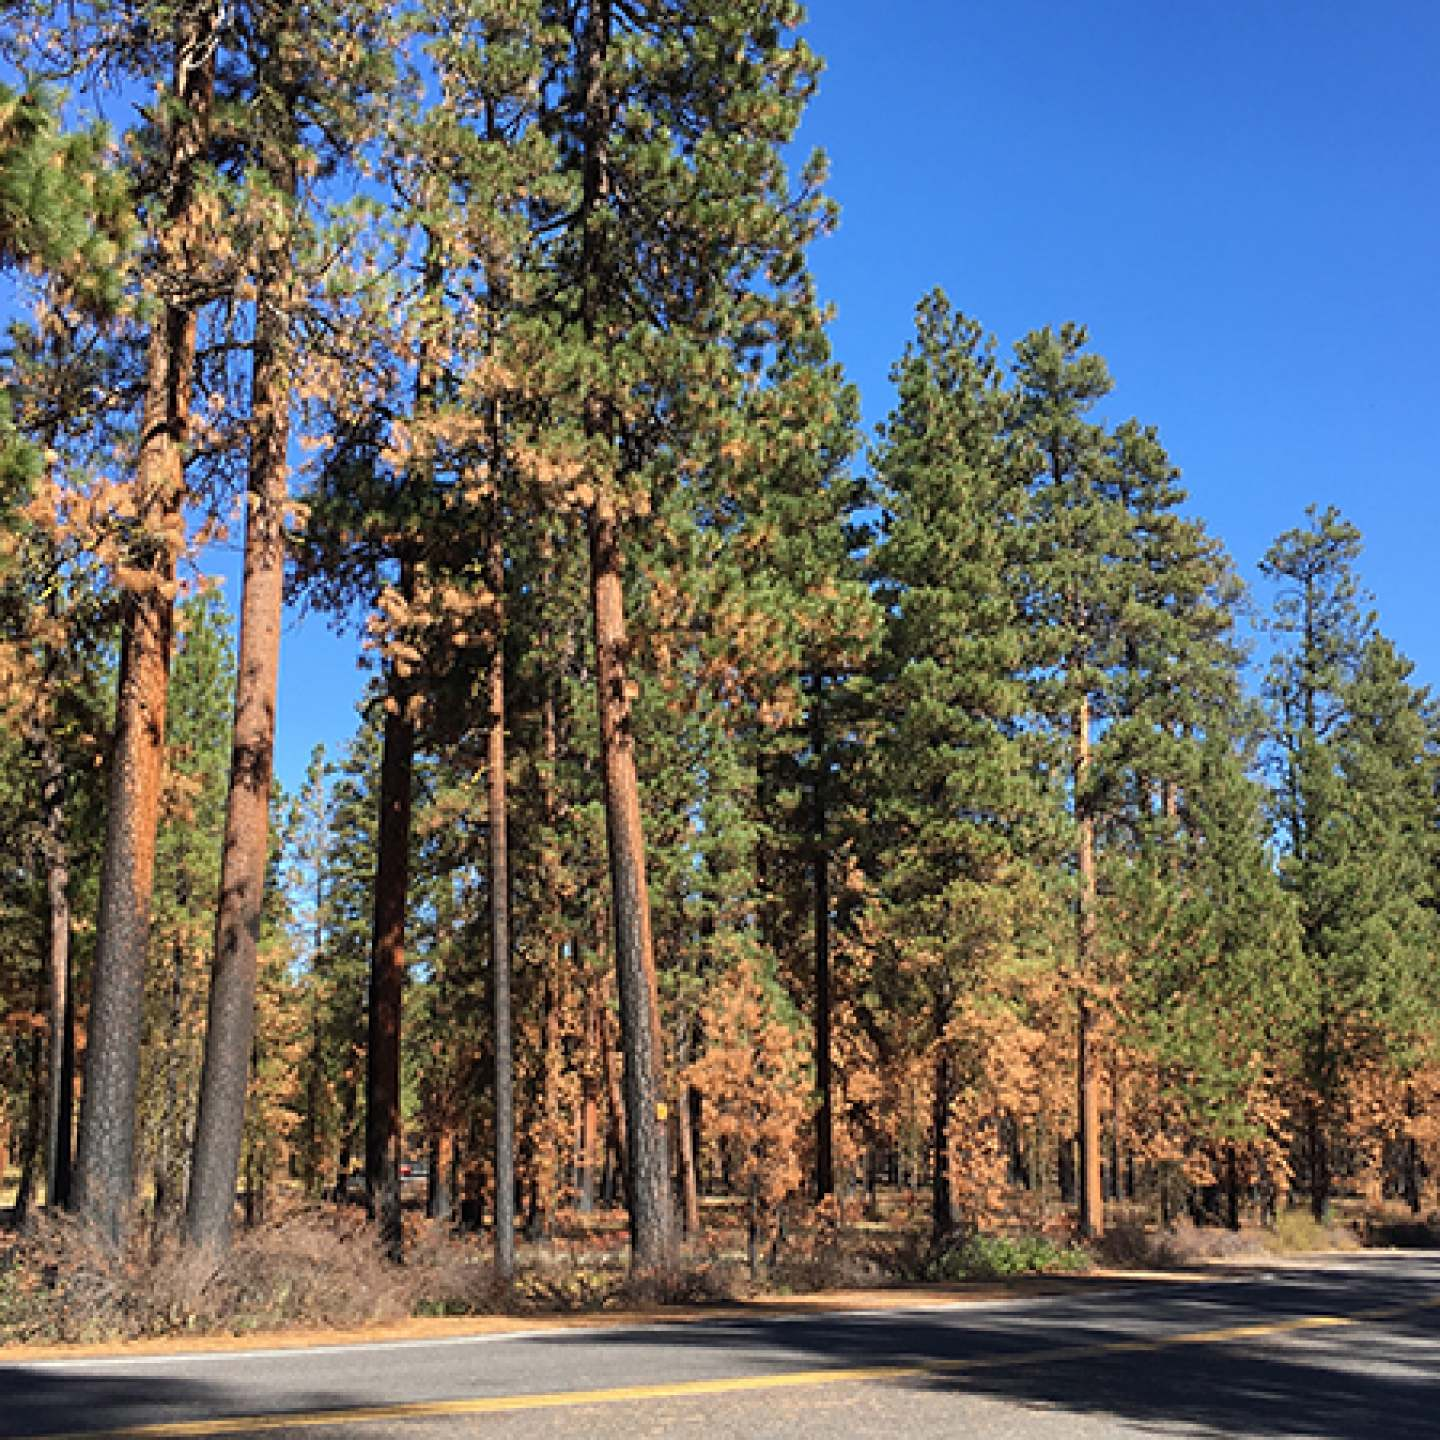 Highway20_DyingTrees_IMG_4514_600px